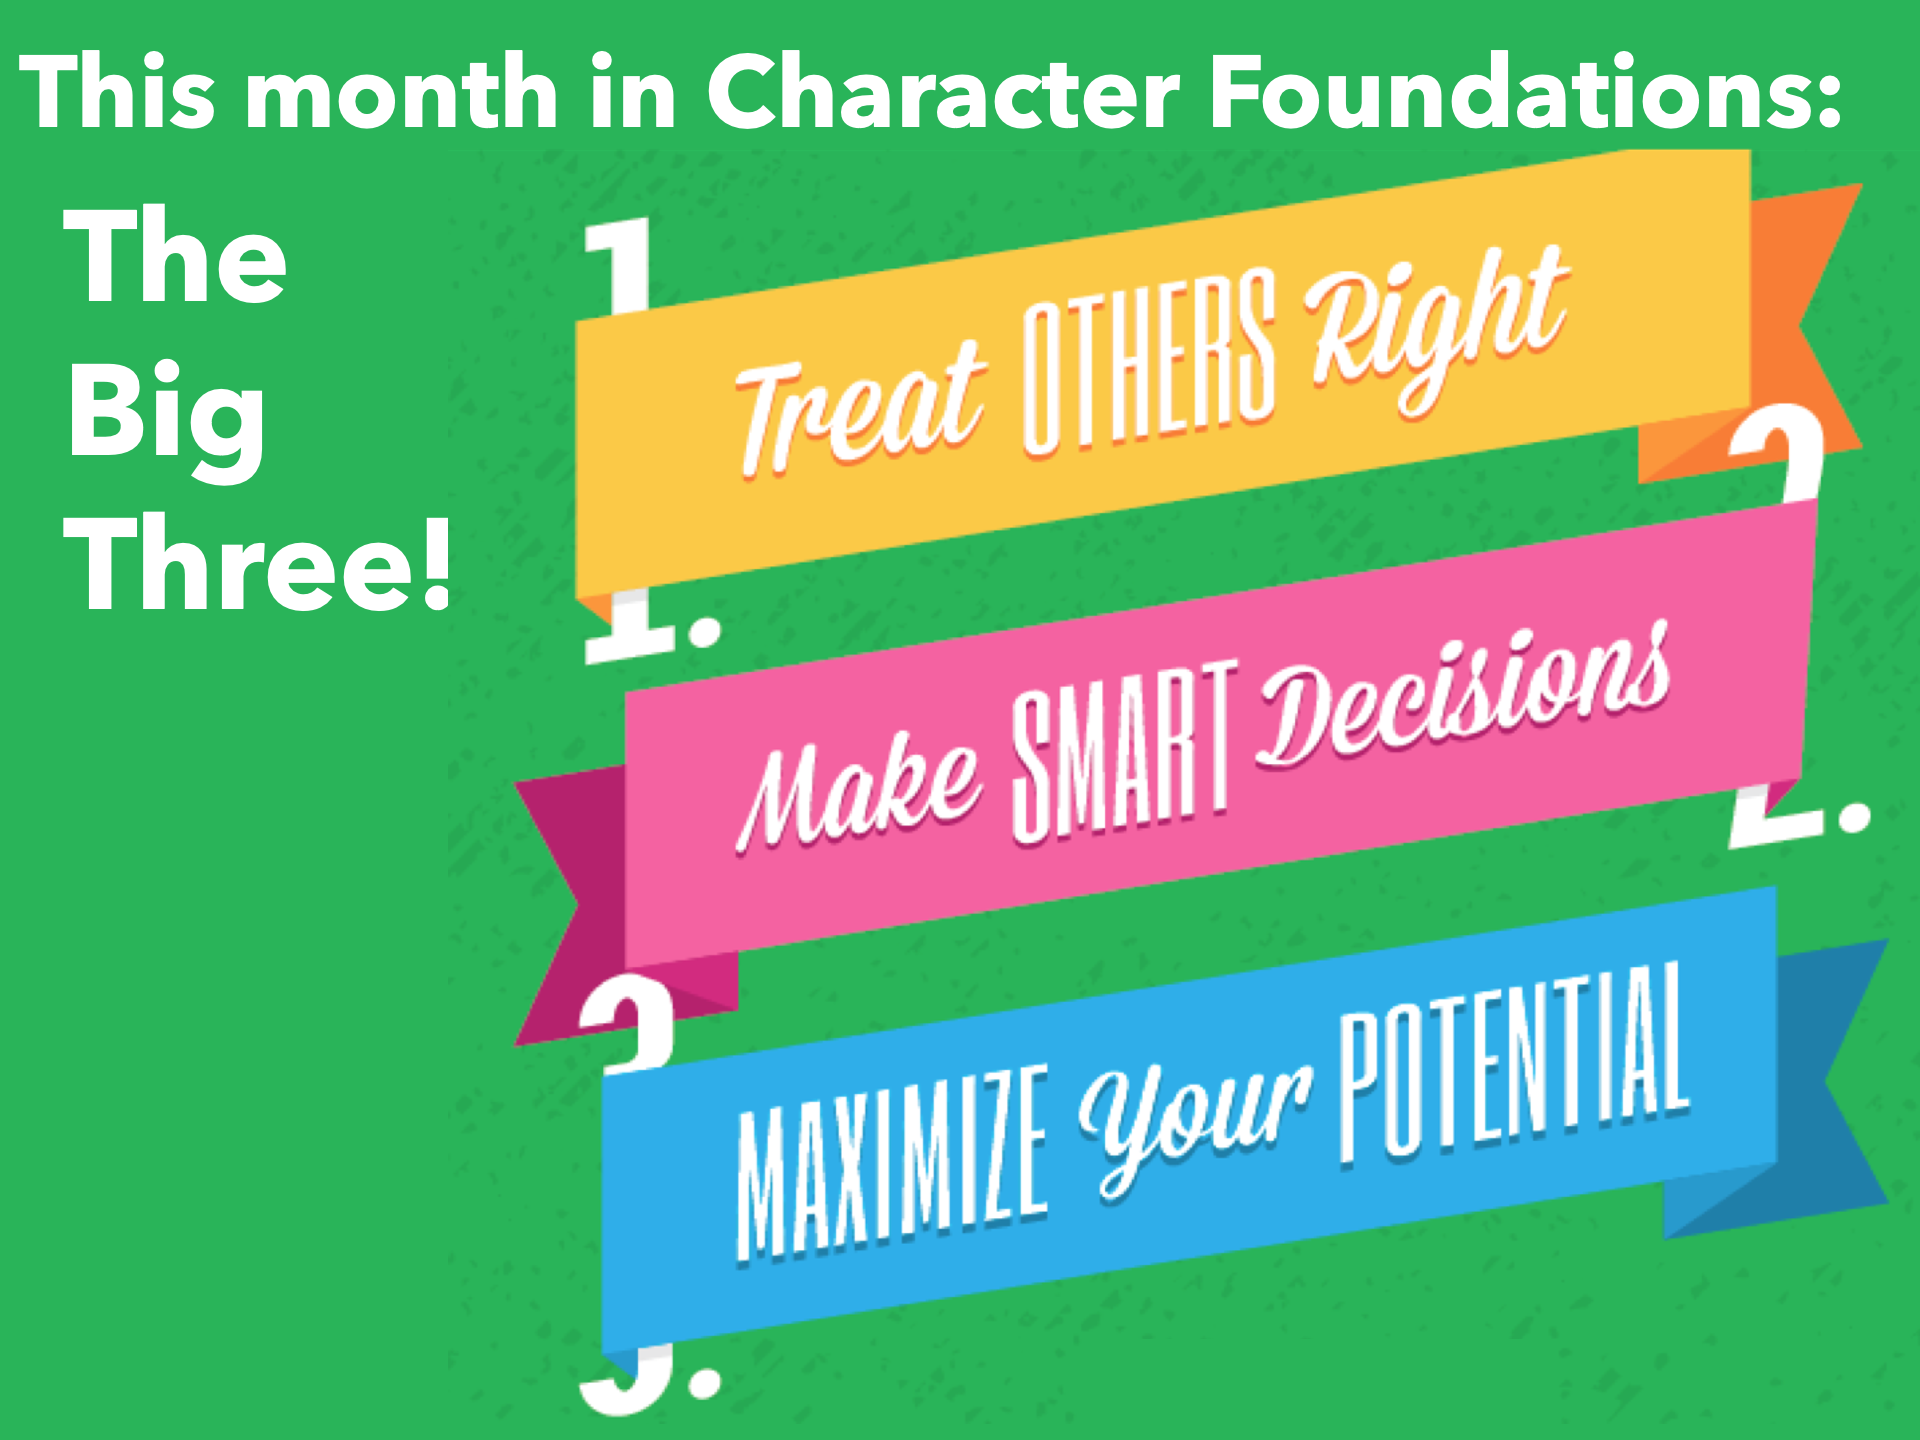 Character Foundations: The Big Three